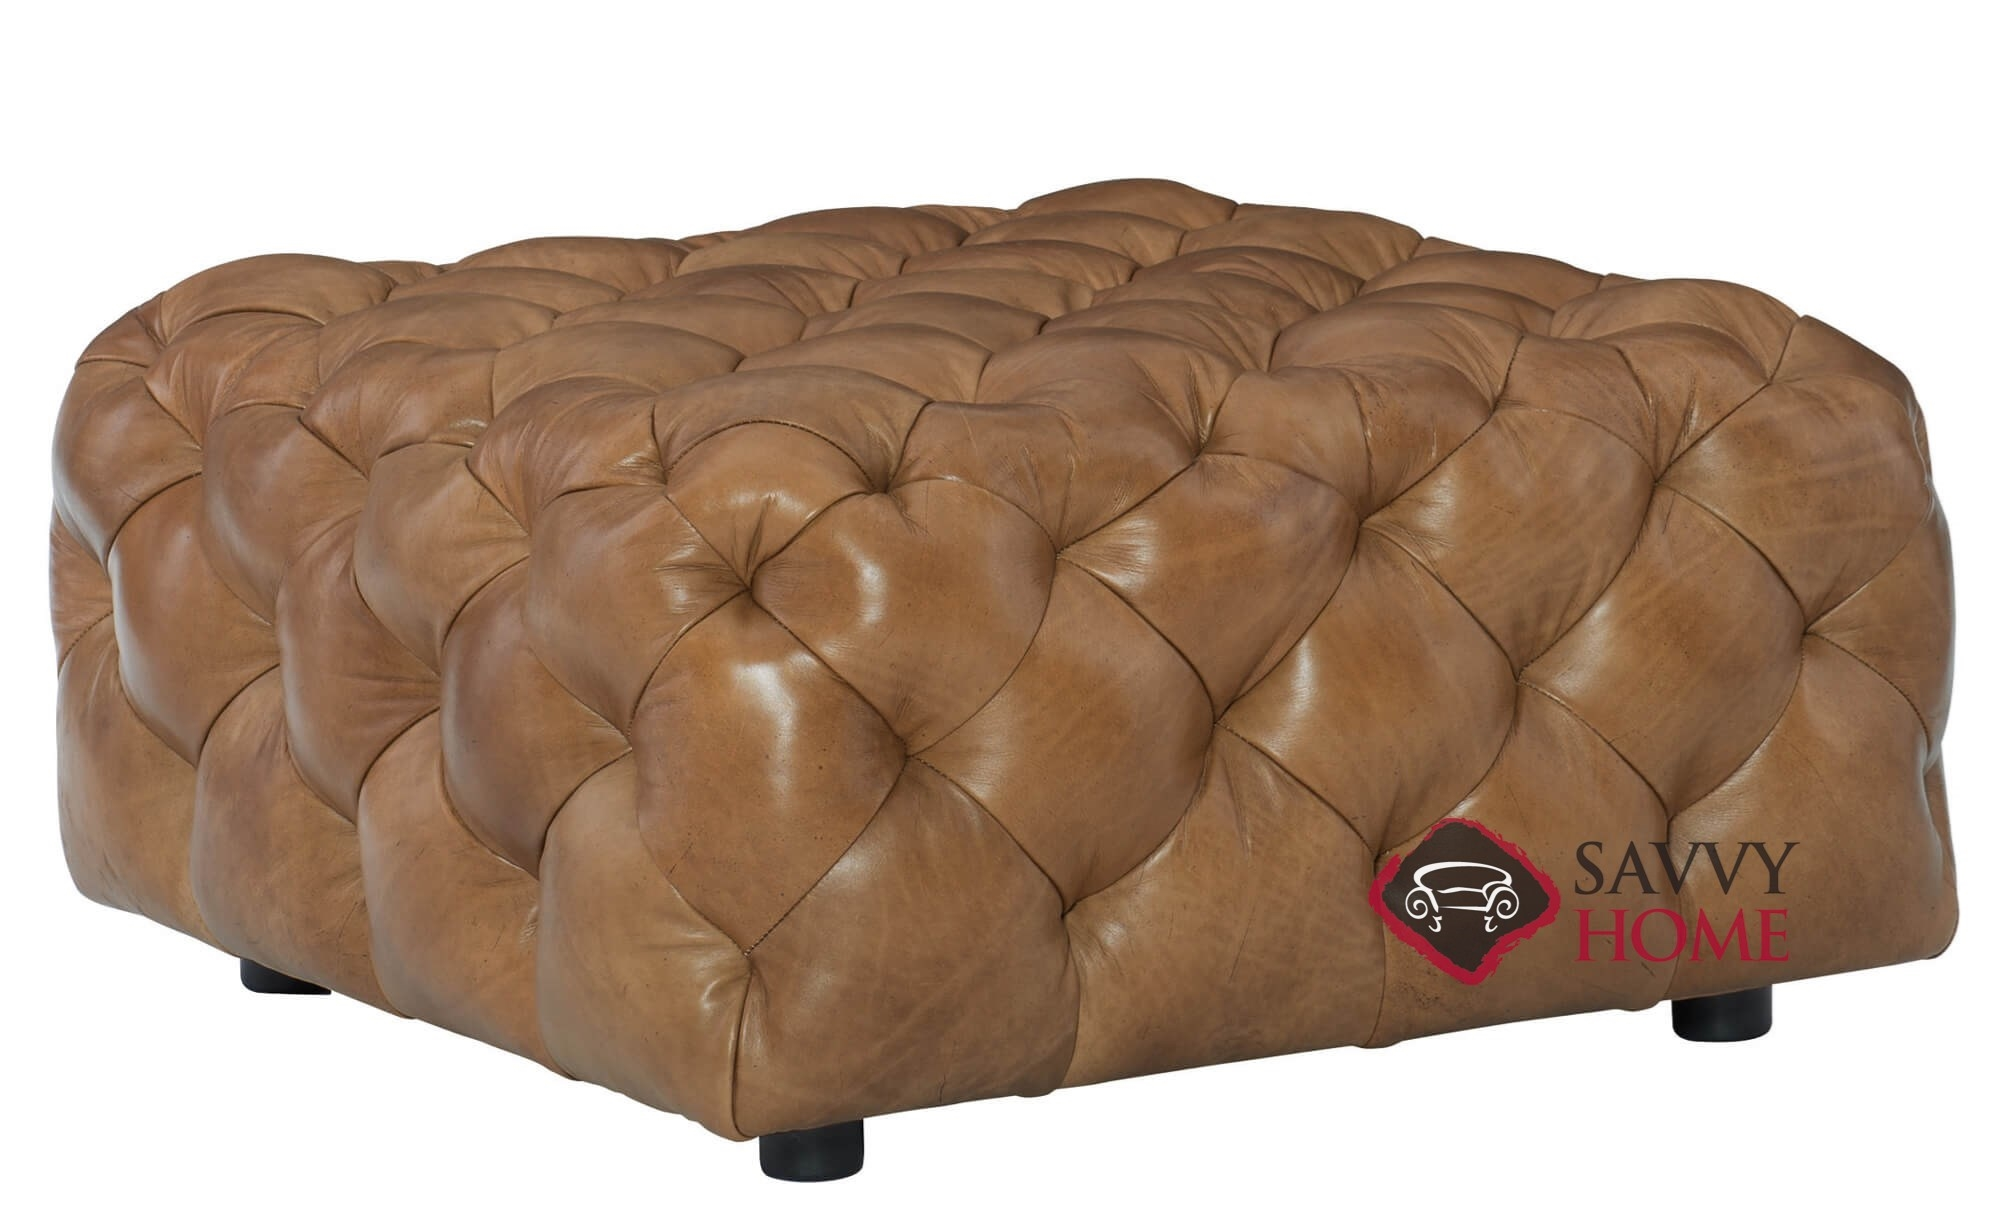 Terrific Quick Ship Rigby By Bernhardt Leather Stationary Ottoman In By Bernhardt With Fast Shipping Savvyhomestore Com Inzonedesignstudio Interior Chair Design Inzonedesignstudiocom